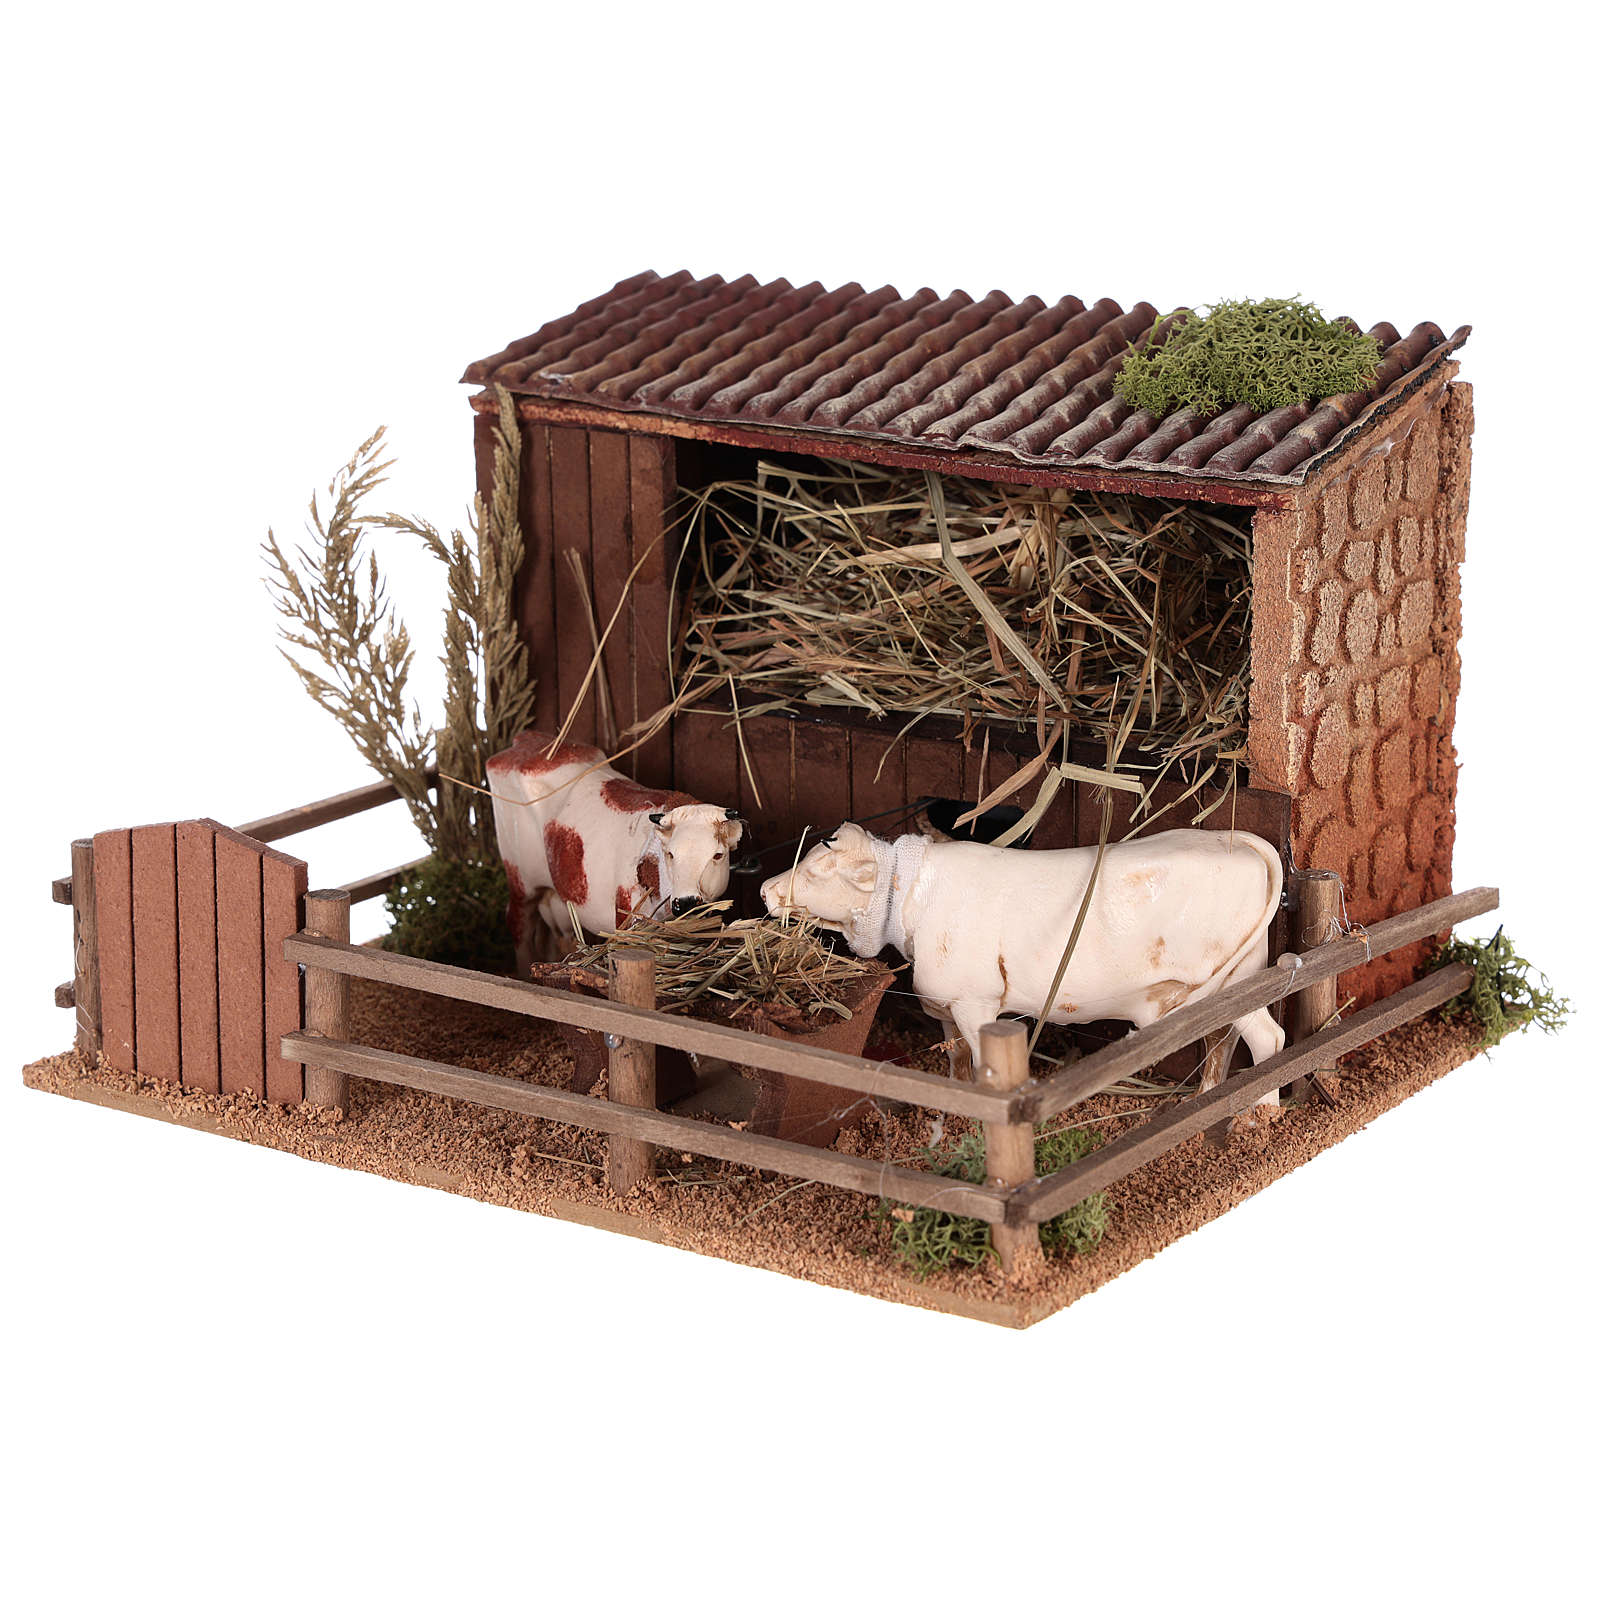 Animated nativity scene figurine, cows in the cattle-shed 3